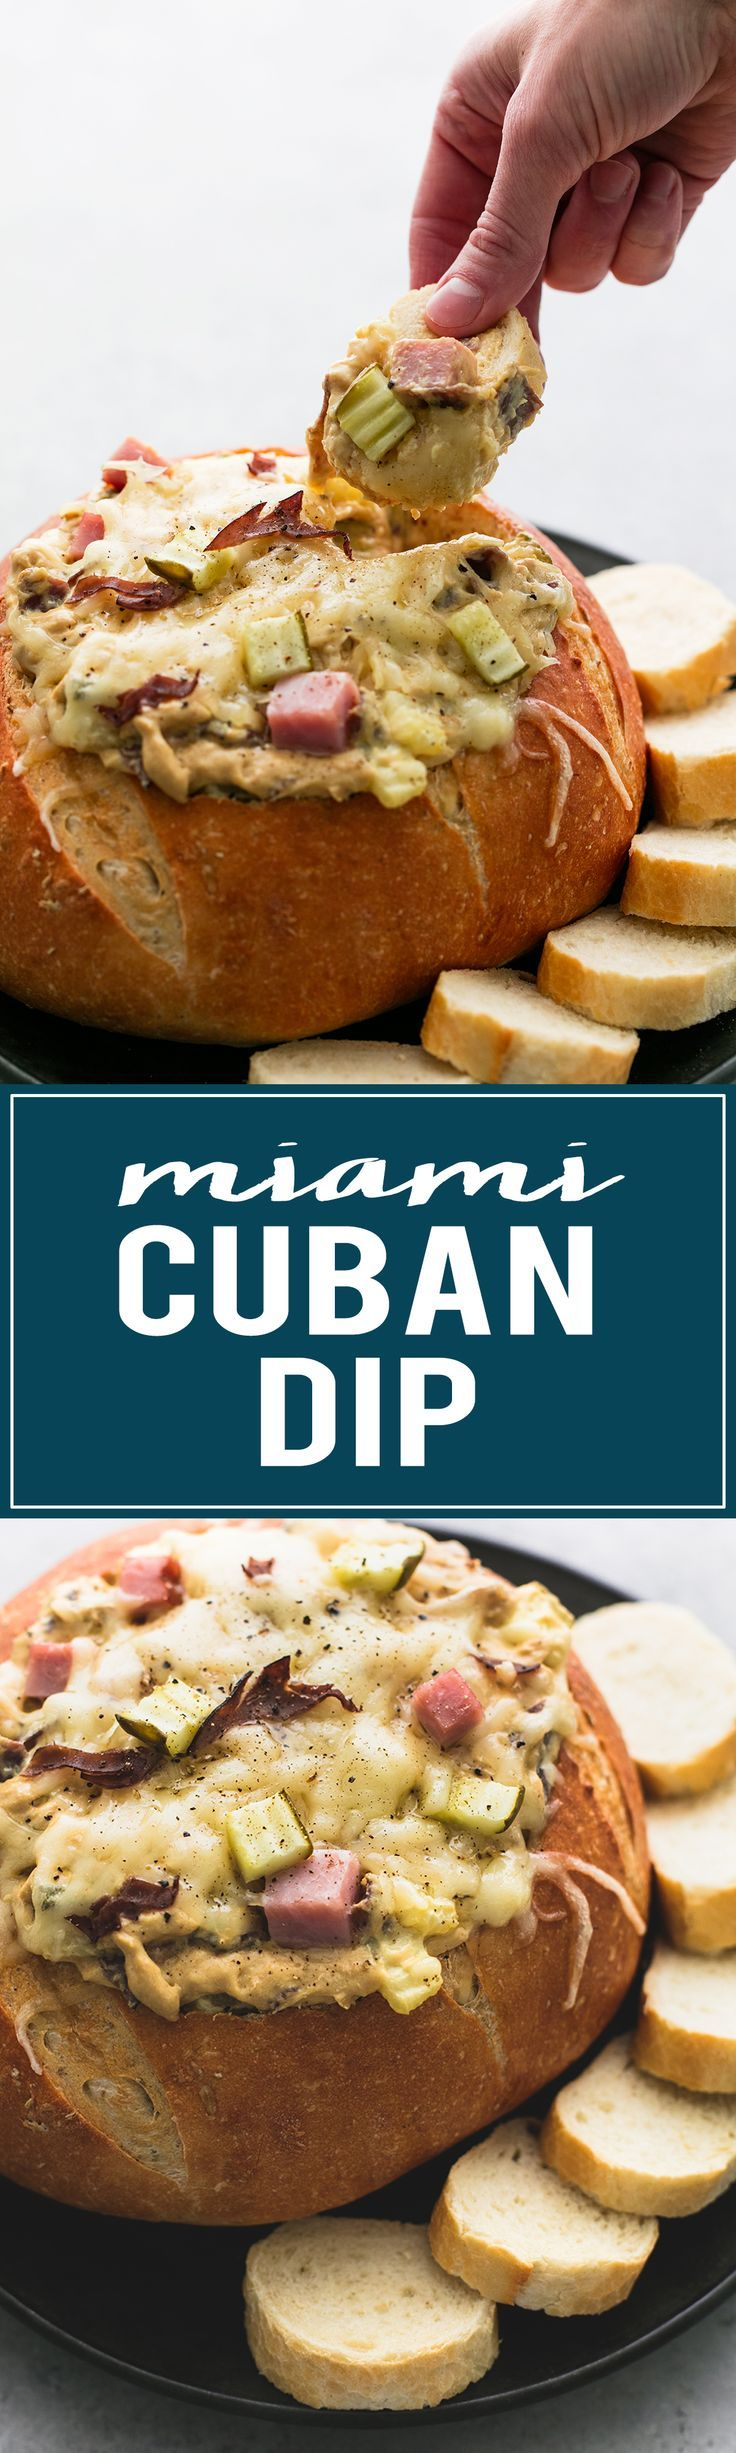 Miami Cuban Dip - a cheesy, dippable twist on the famous Cuban sandwich! | http://lecremedelacrumb.com